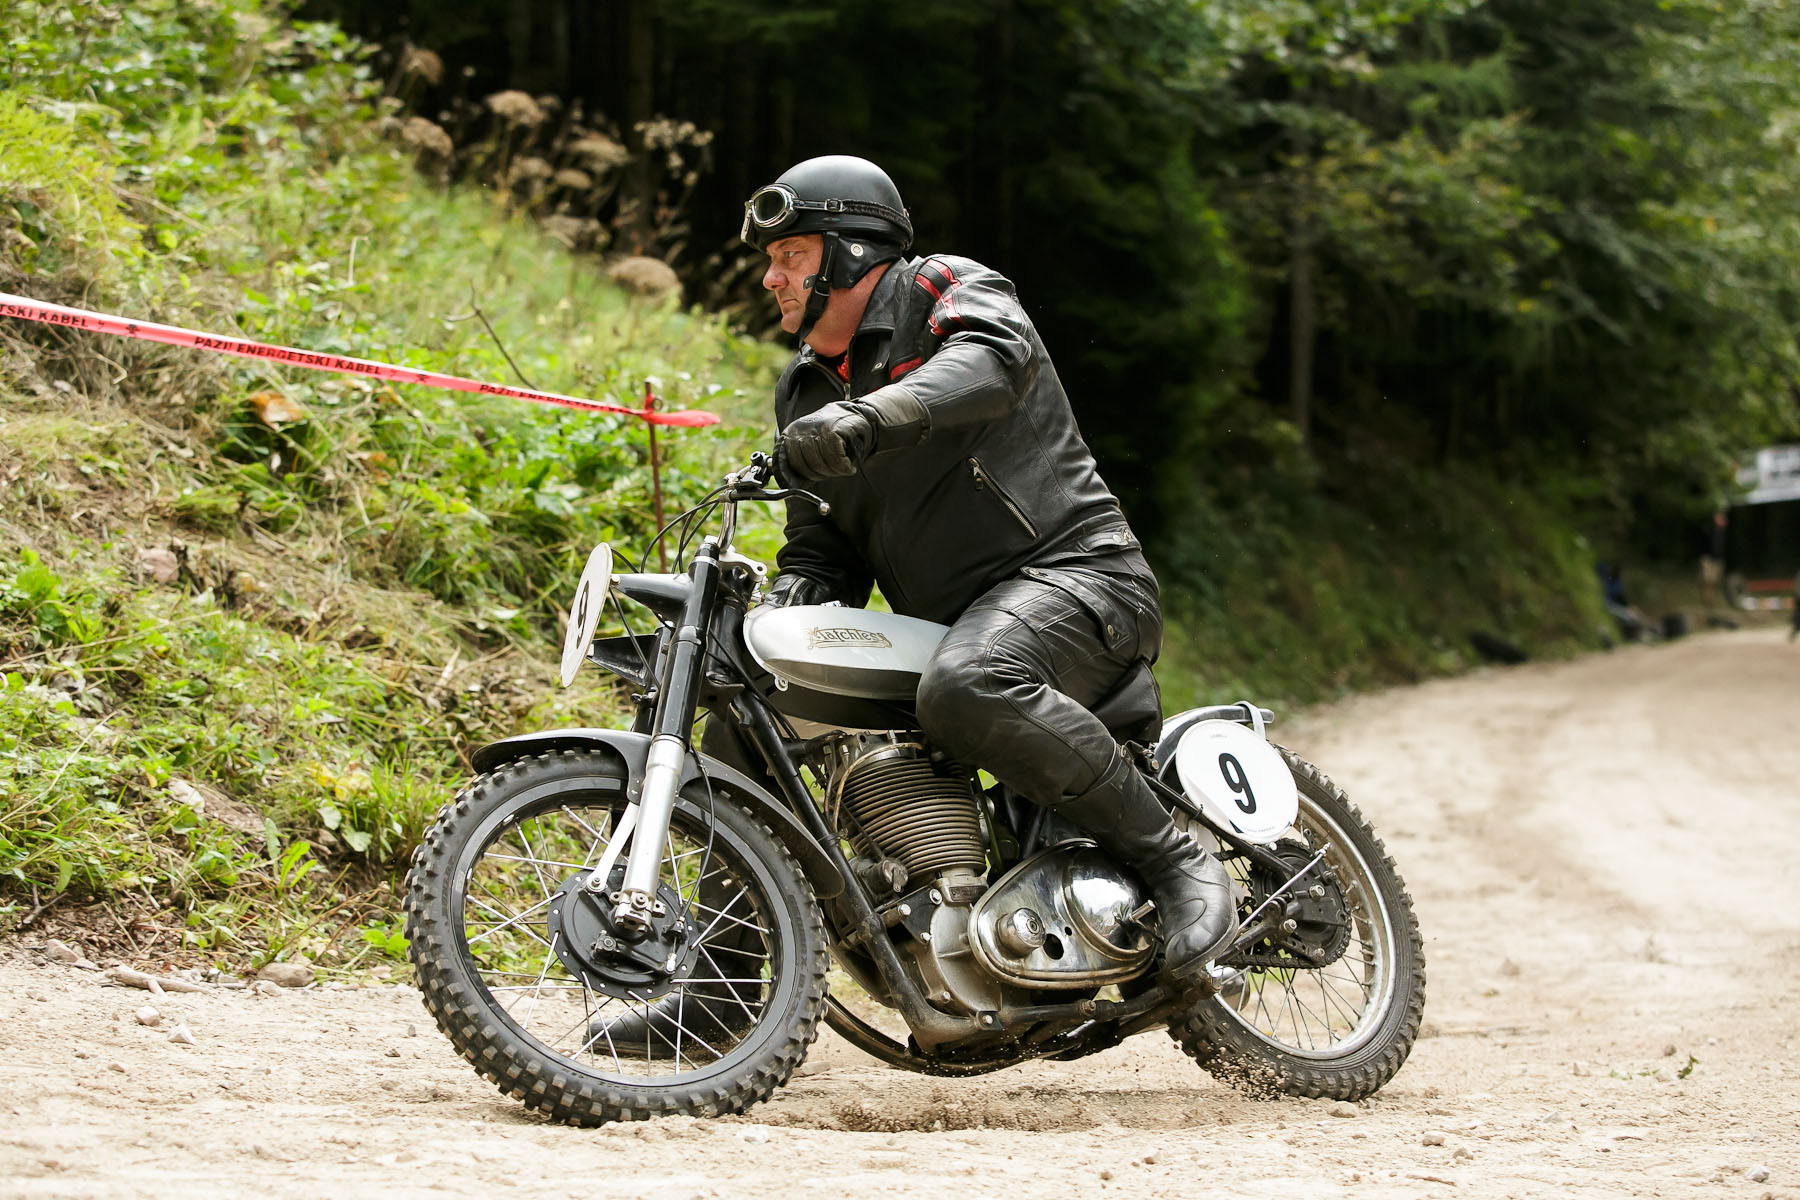 Matjaz Lesjak (SLO) on a 1941 Matchless motorcycle competes in the 19th Hrast Memorial, the international oldtimers\' mountain race in Ljubelj, Slovenia, Sep. 13, 2015.